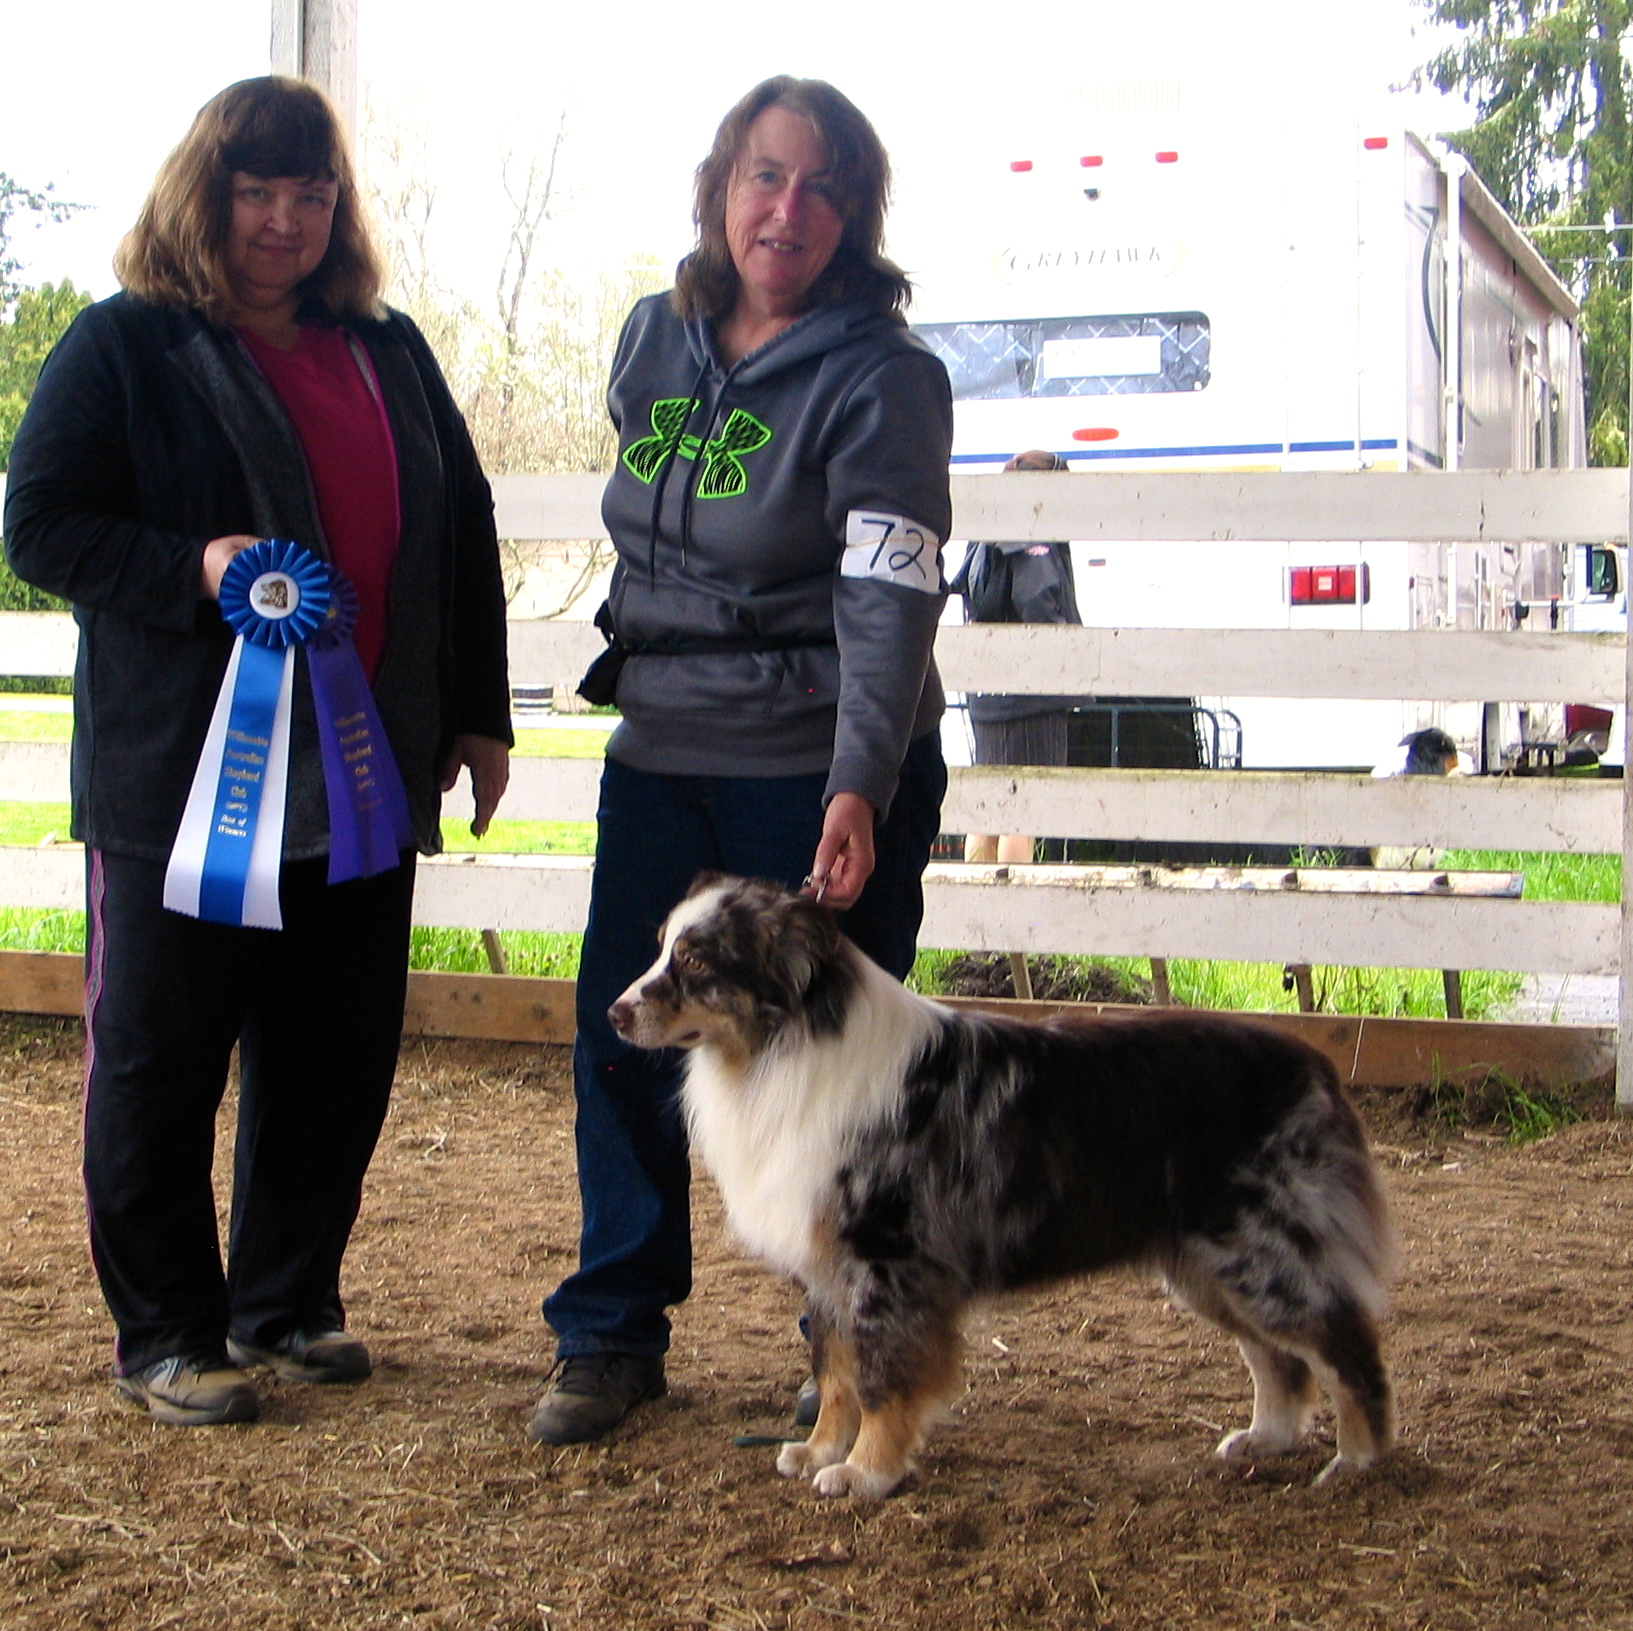 Crystal Canyon's Hammer Down winning both WD and BOW at the March 2016 Scio conformation show from the BBX class. In April, at his first agility trial, he also did very well and earned a 1st place Q in novice regular. Racer is a lovely  boy to work with. Lots of drive and a friendly, willing temperament wrapped up in a gorgeous dark liver red merle package.